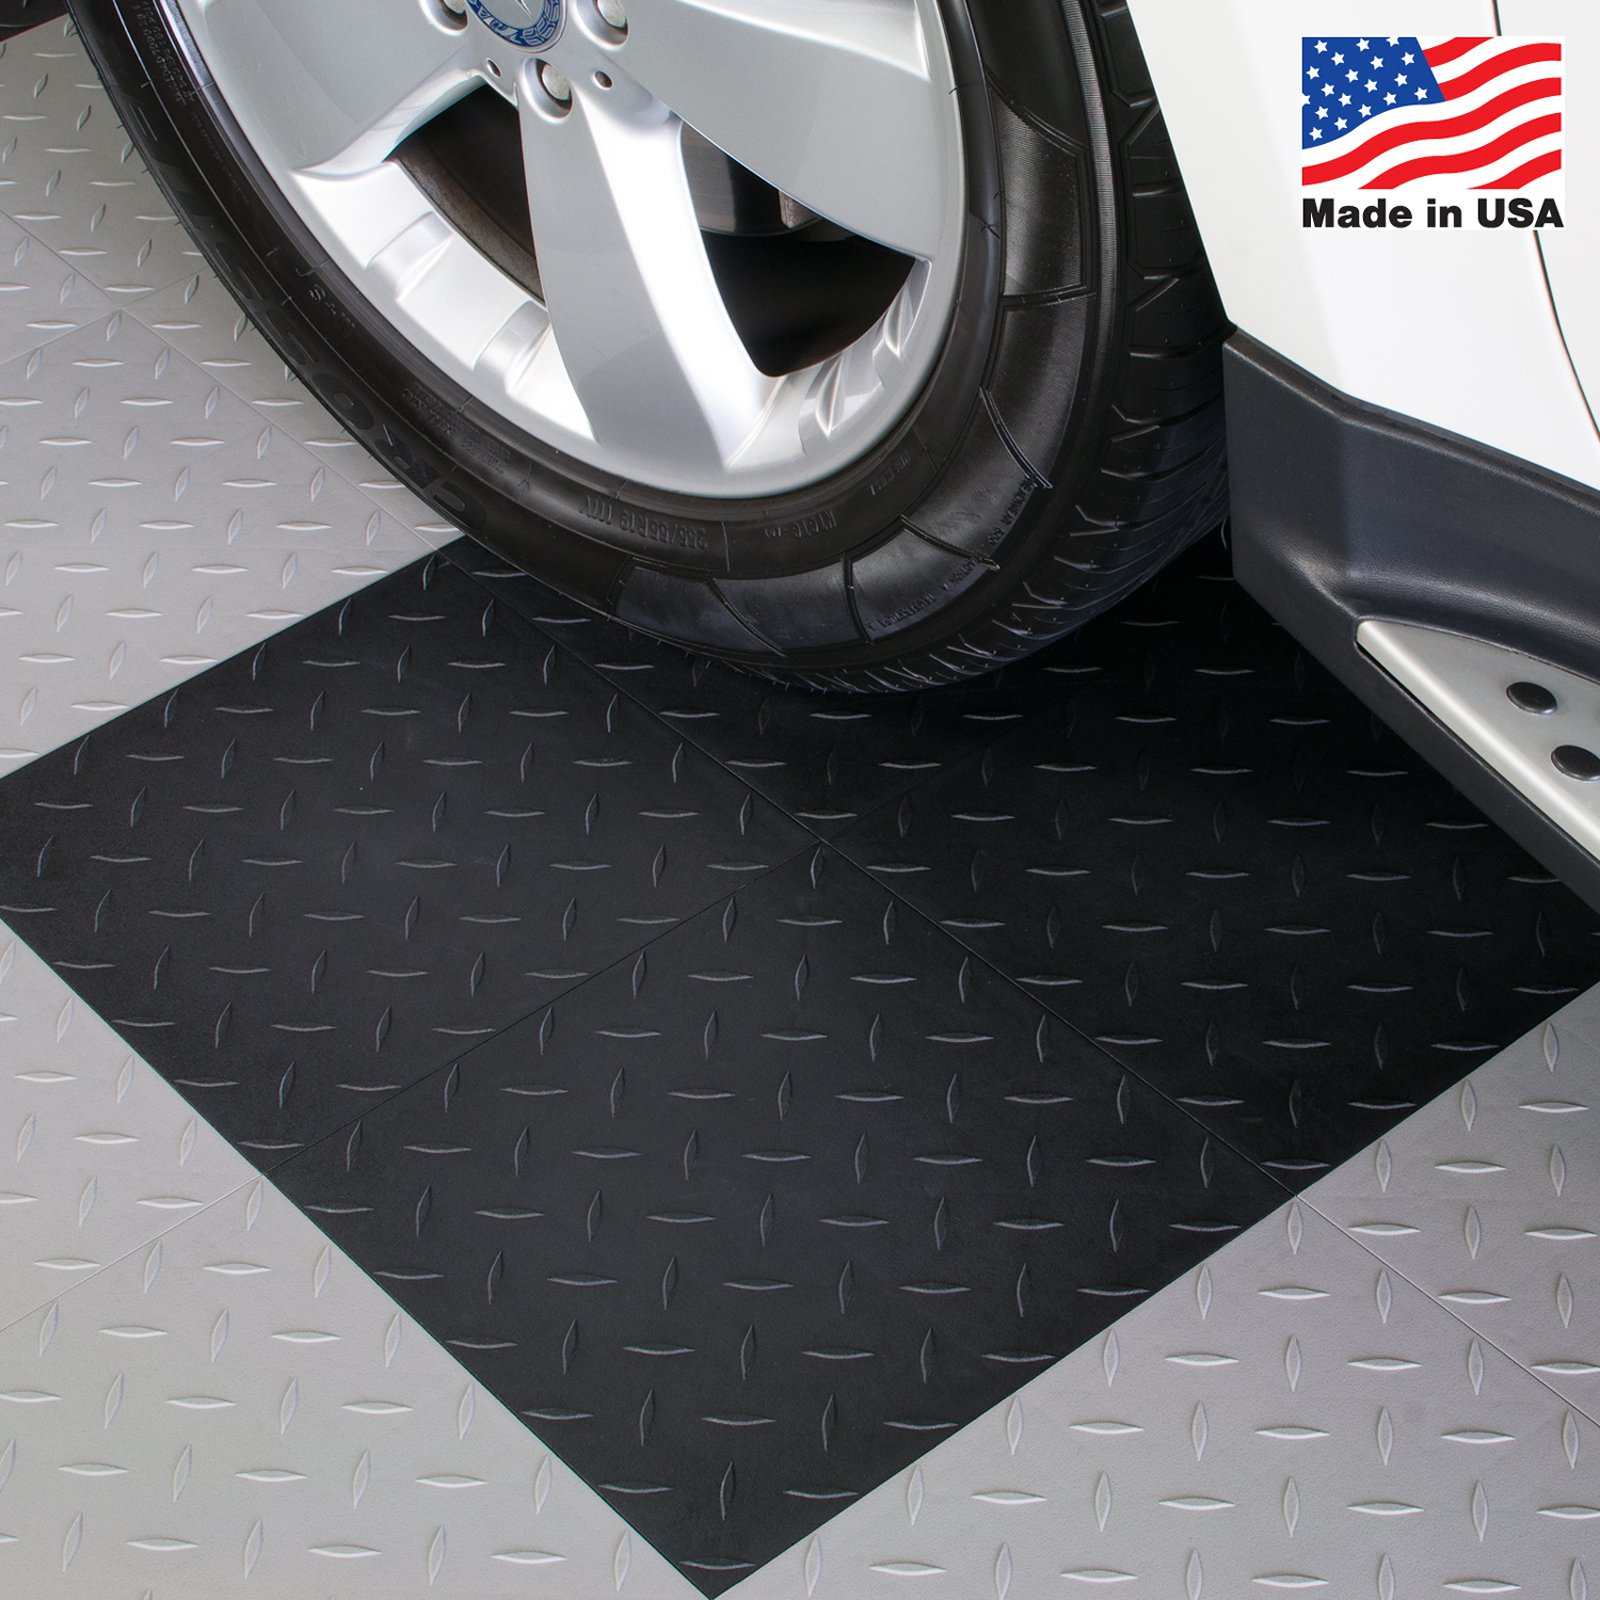 Blocktile garage flooring diamond top interlocking tiles set of blocktile garage flooring diamond top interlocking tiles set of 27 walmart dailygadgetfo Choice Image